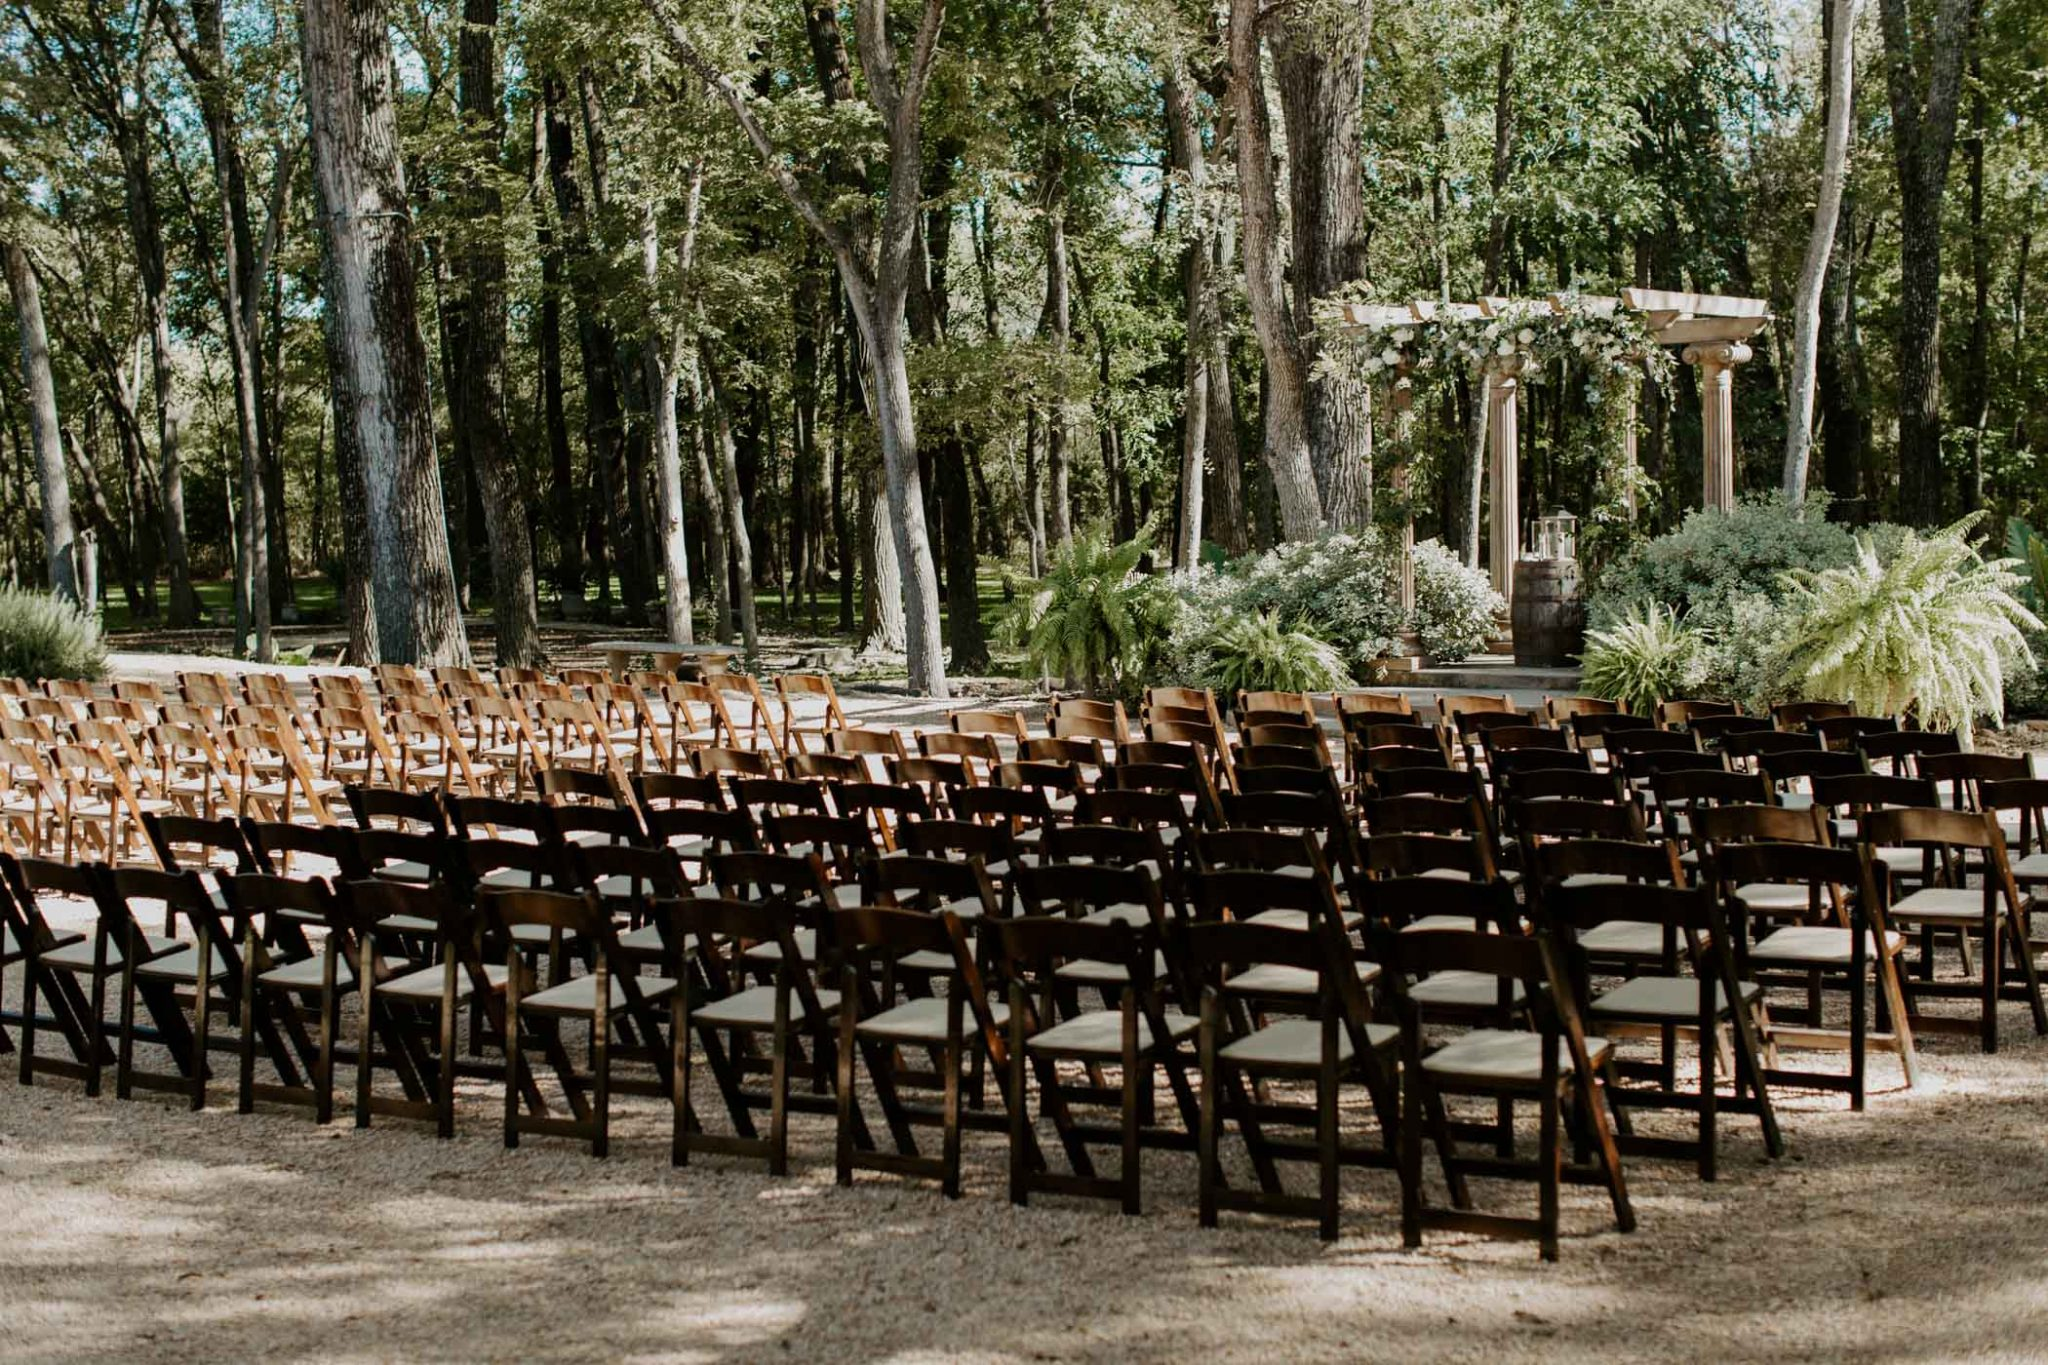 Dreamy outdoor wedding ceremony set up in the middle of a forest